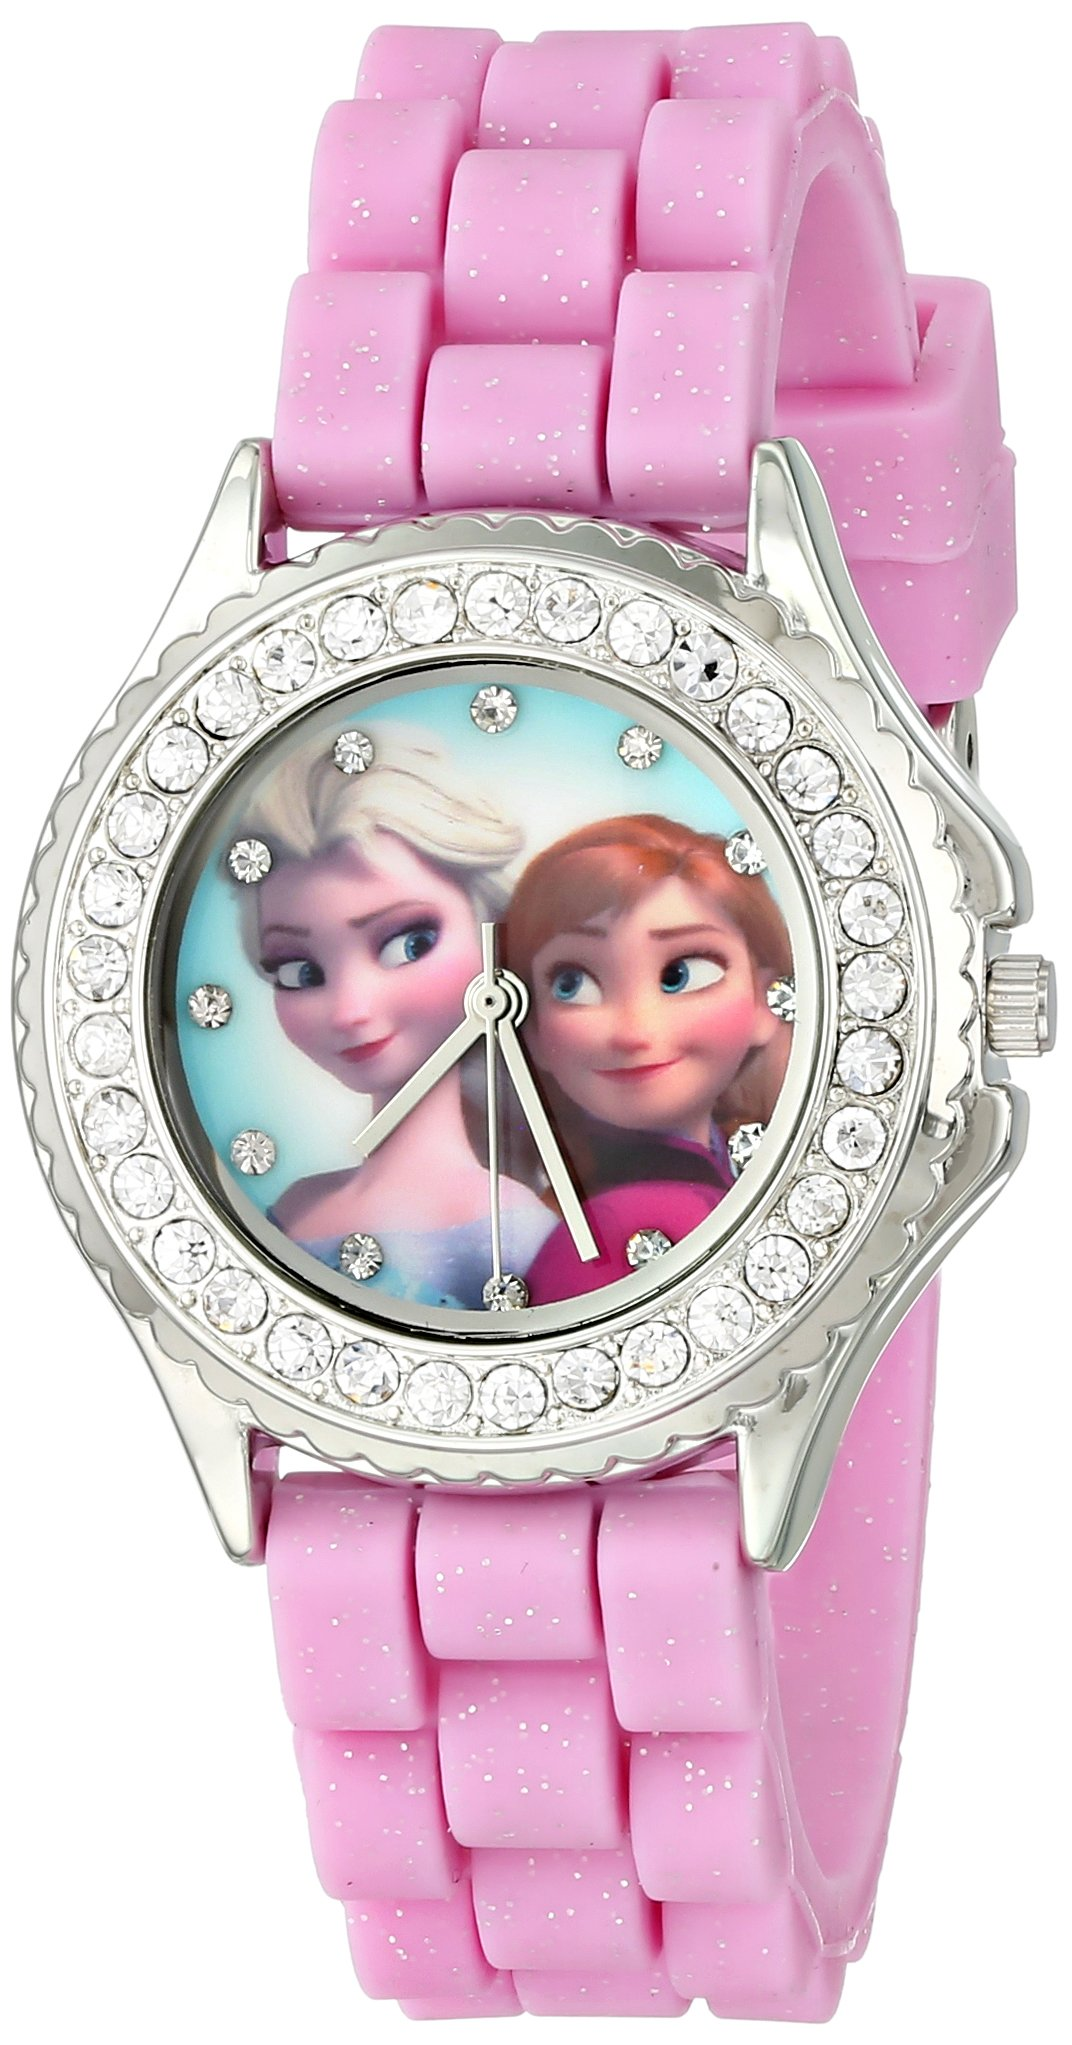 Disney Kids' FZN3554 Frozen Anna and Elsa Rhinestone-Accented Watch with Glittered Pink Band by Disney